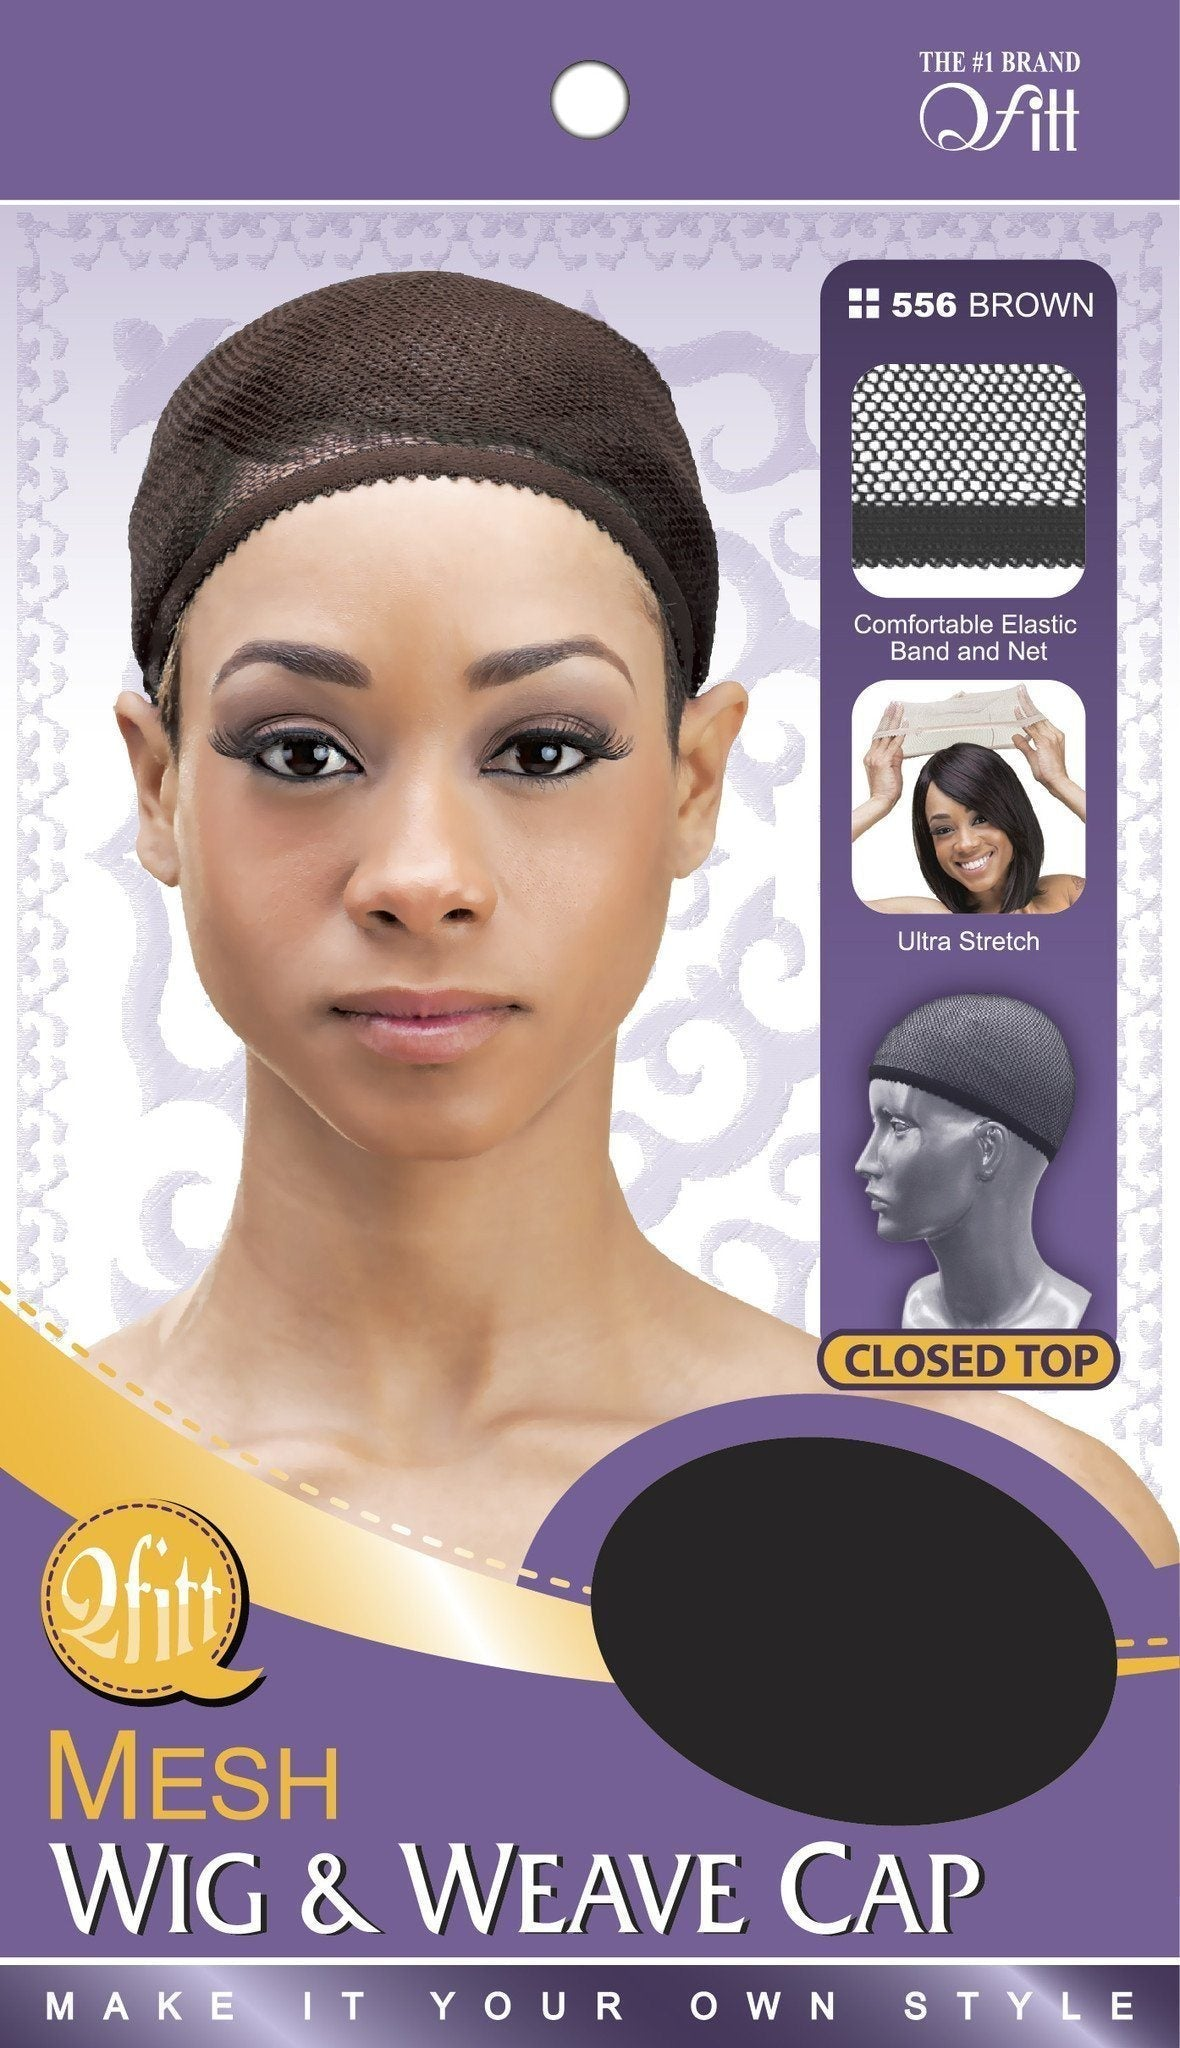 #556 Mesh Wig & Weave Cap Closed Top / Brown